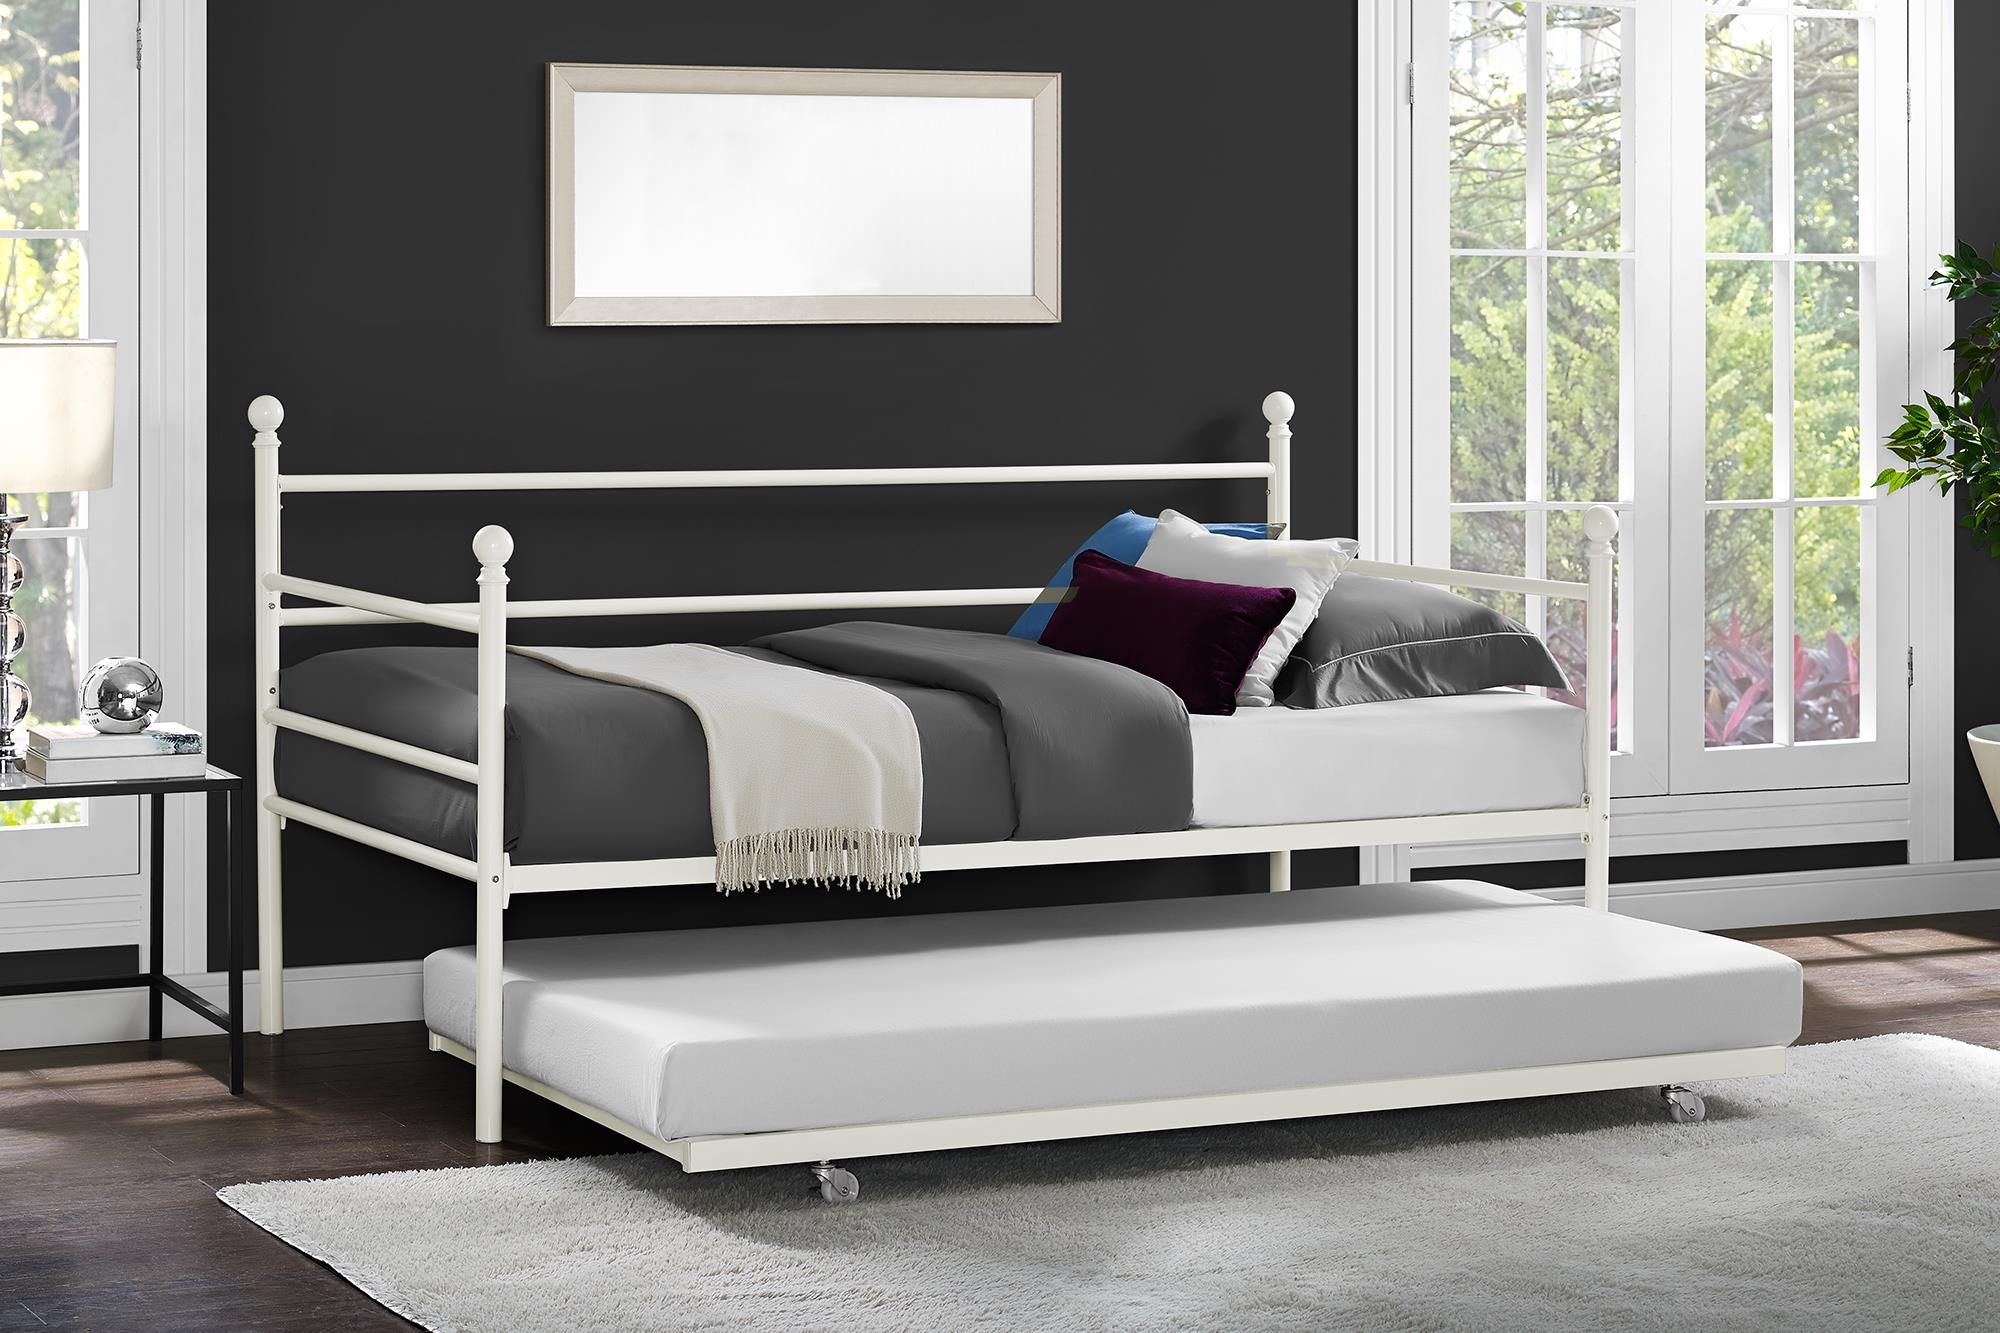 The Minnesota Made Jennings Kids Bed Is Crafted By S From Durable Recycled Natural Steel With A Thin Intricate Silhouette That Inspired